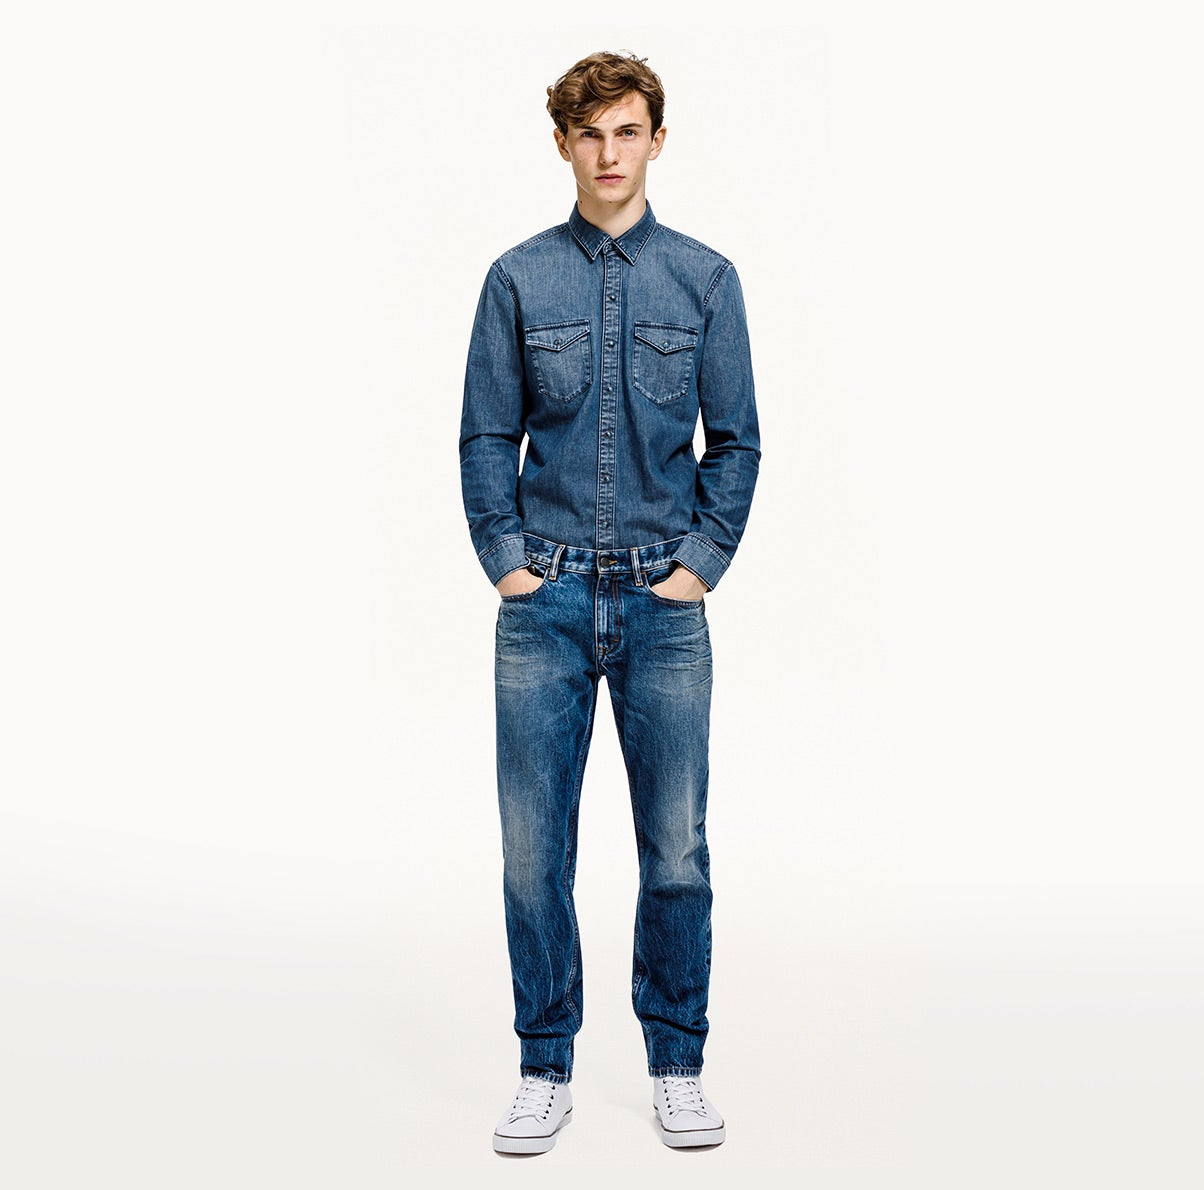 Shop Jeans and Shirts